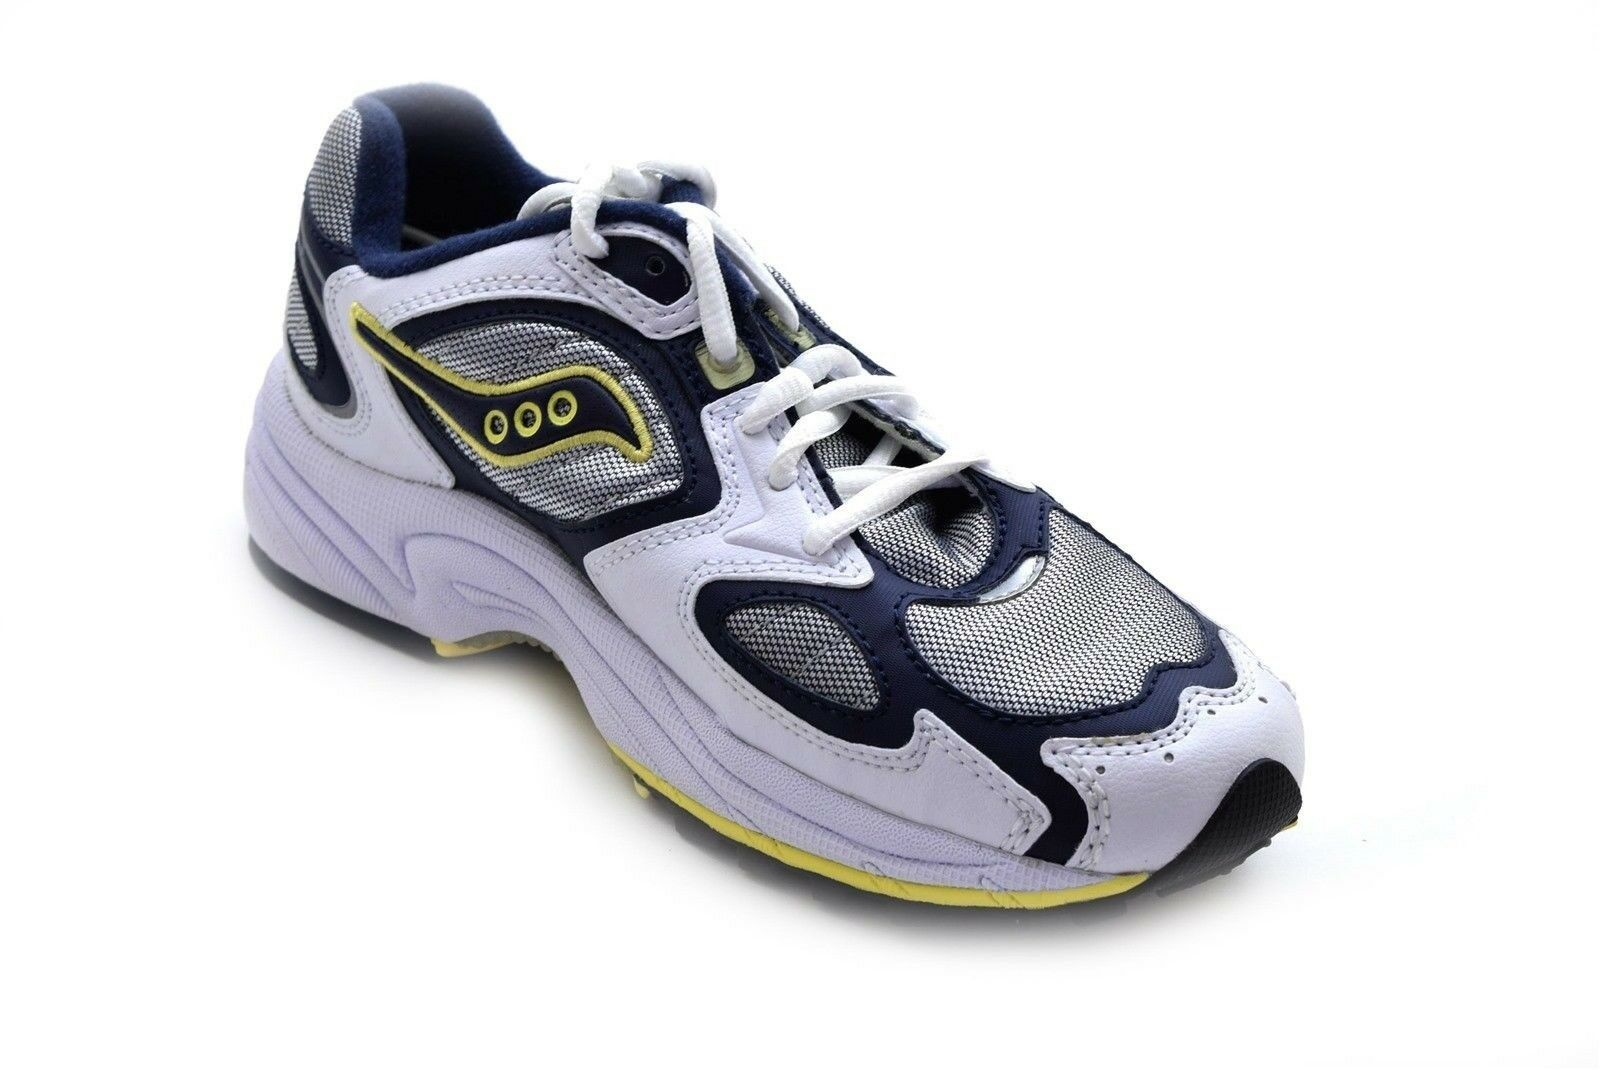 Saucony Women's Grid Jazz 9 Running shoes shoes shoes White Navy Yellow Size 5 - NIB 01fbef